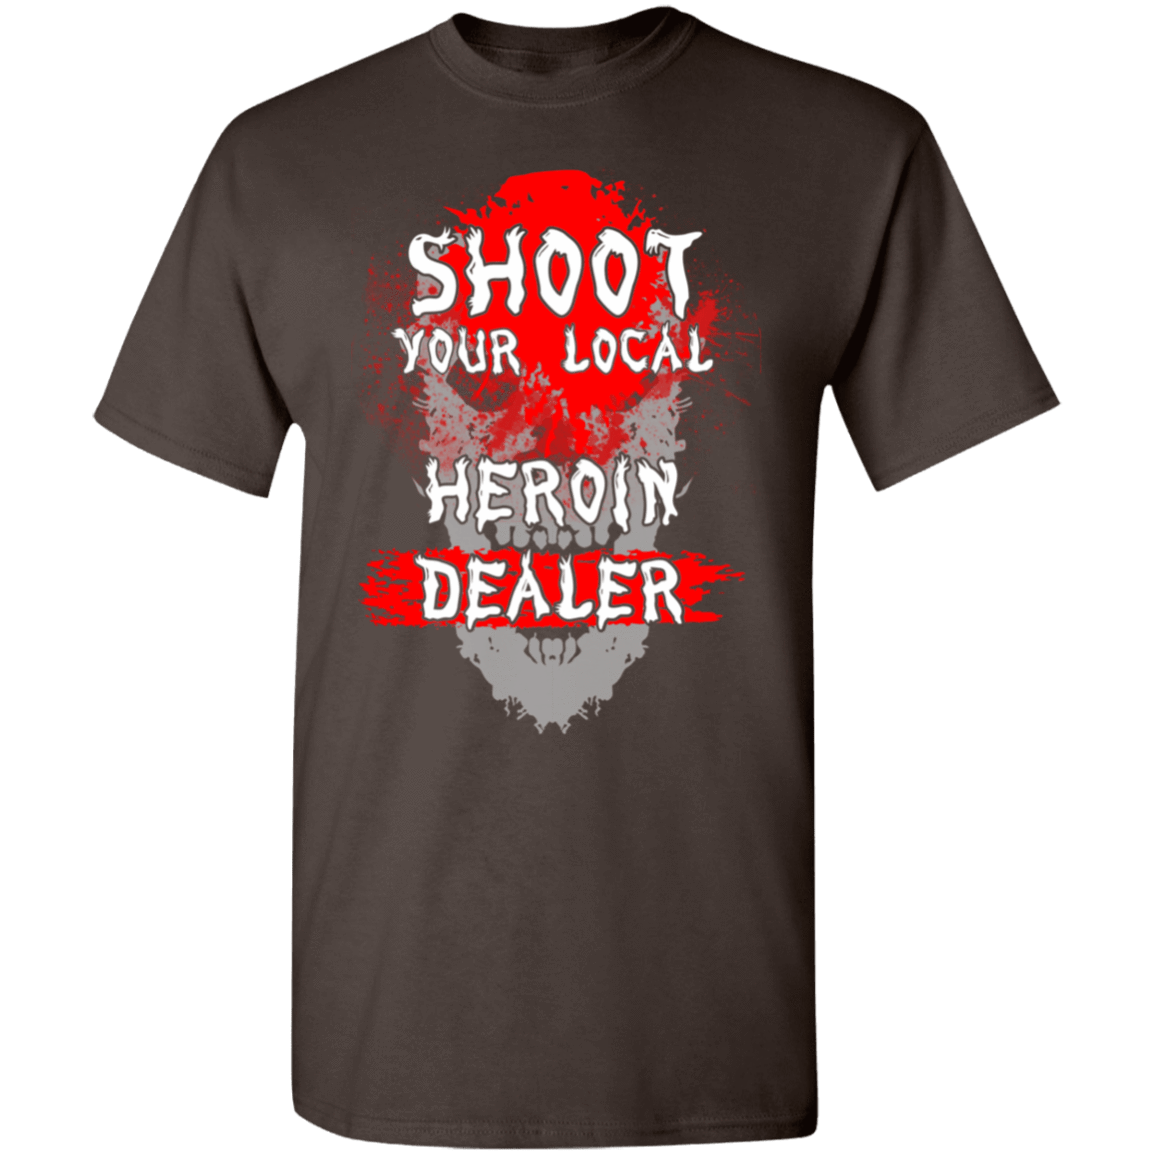 Shoot Your Local Heroin Dealer T-Shirts, Hoodies, Tank 1049-9956-80245838-48152 - Tee Ript